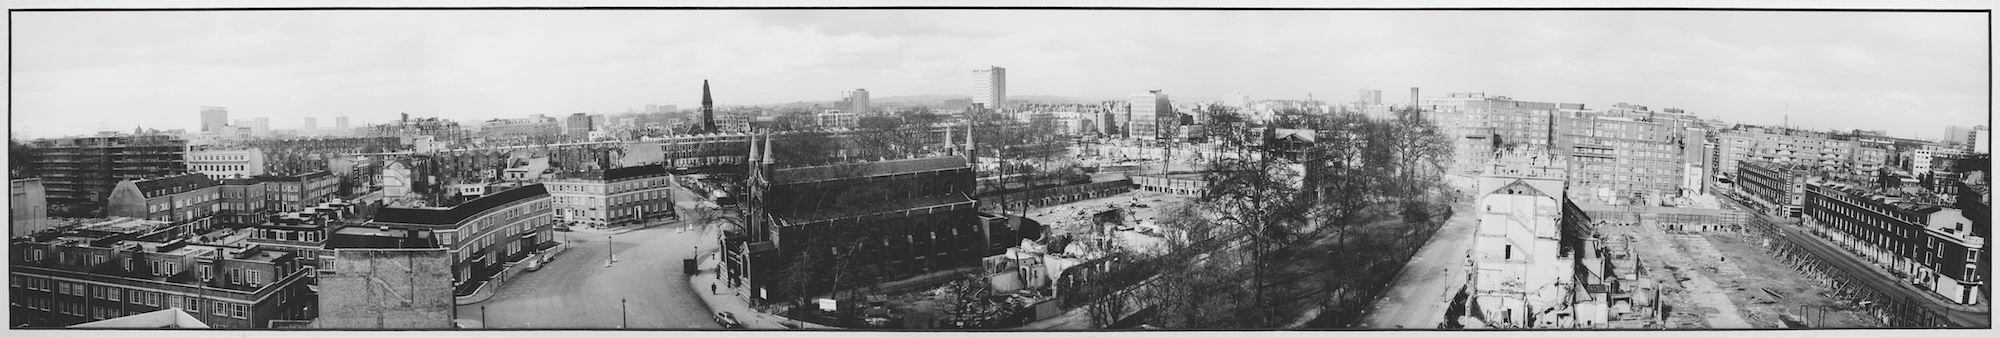 Panoramic photo of St John's and the parish in the 1960s